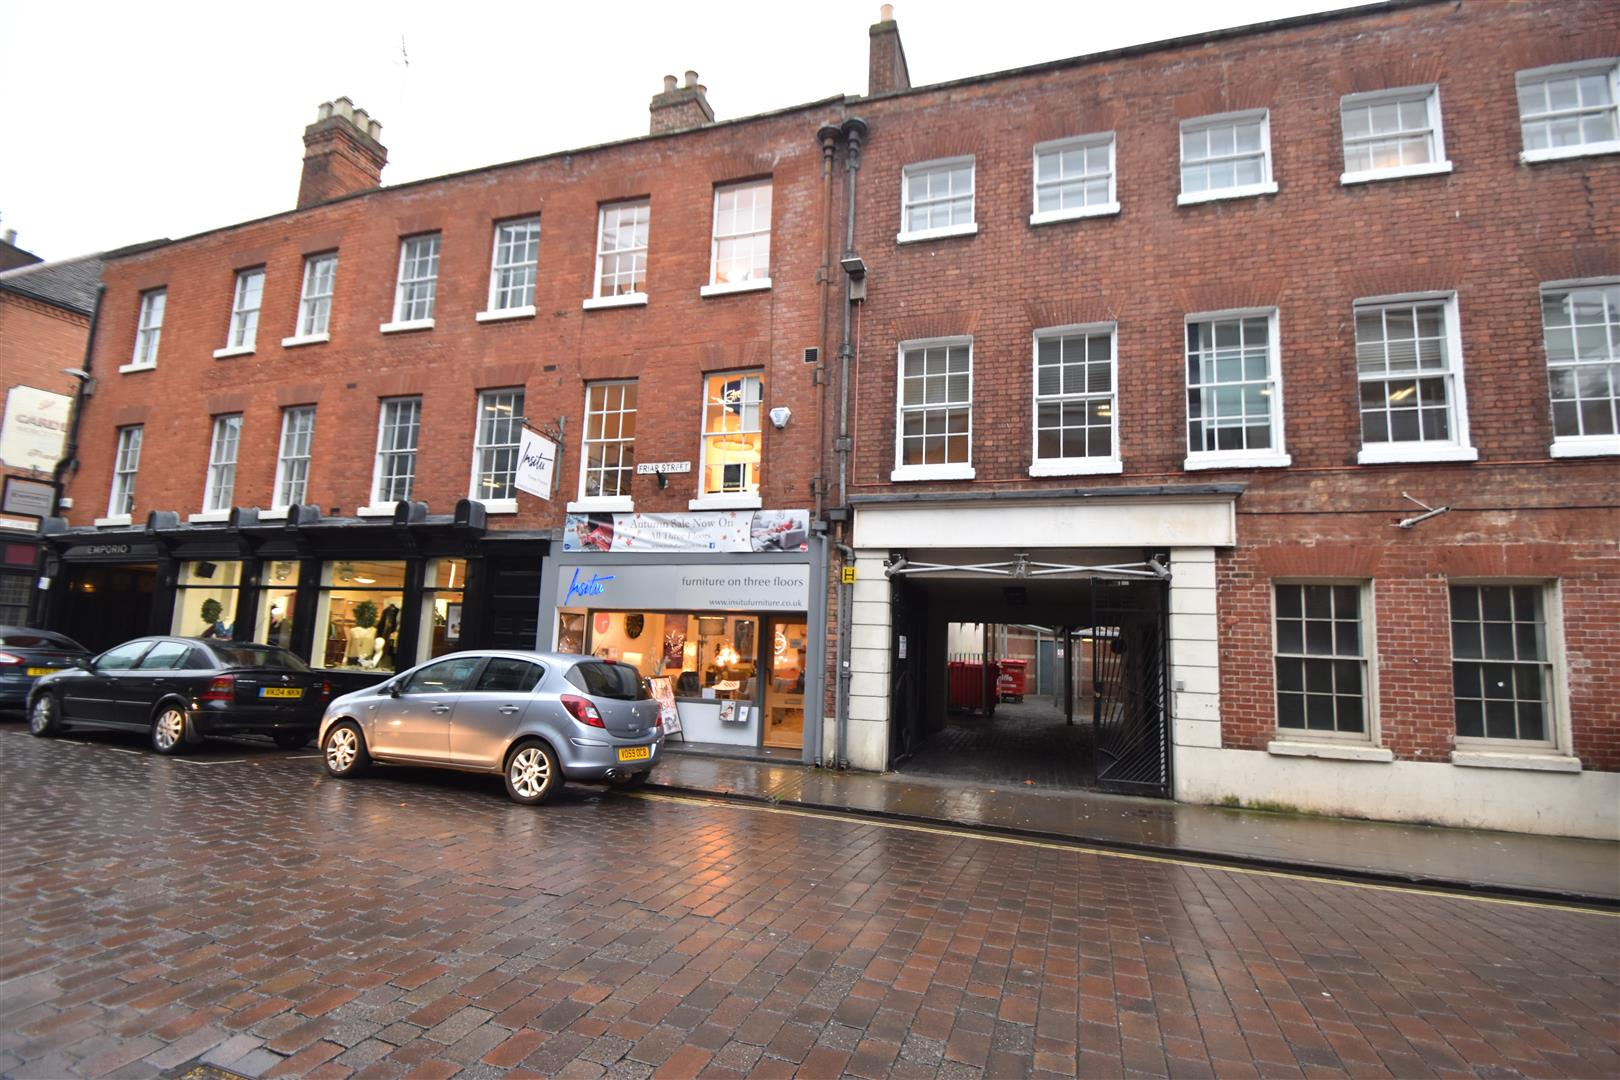 2 Bedrooms Flat for sale in Friar Street, Worcester